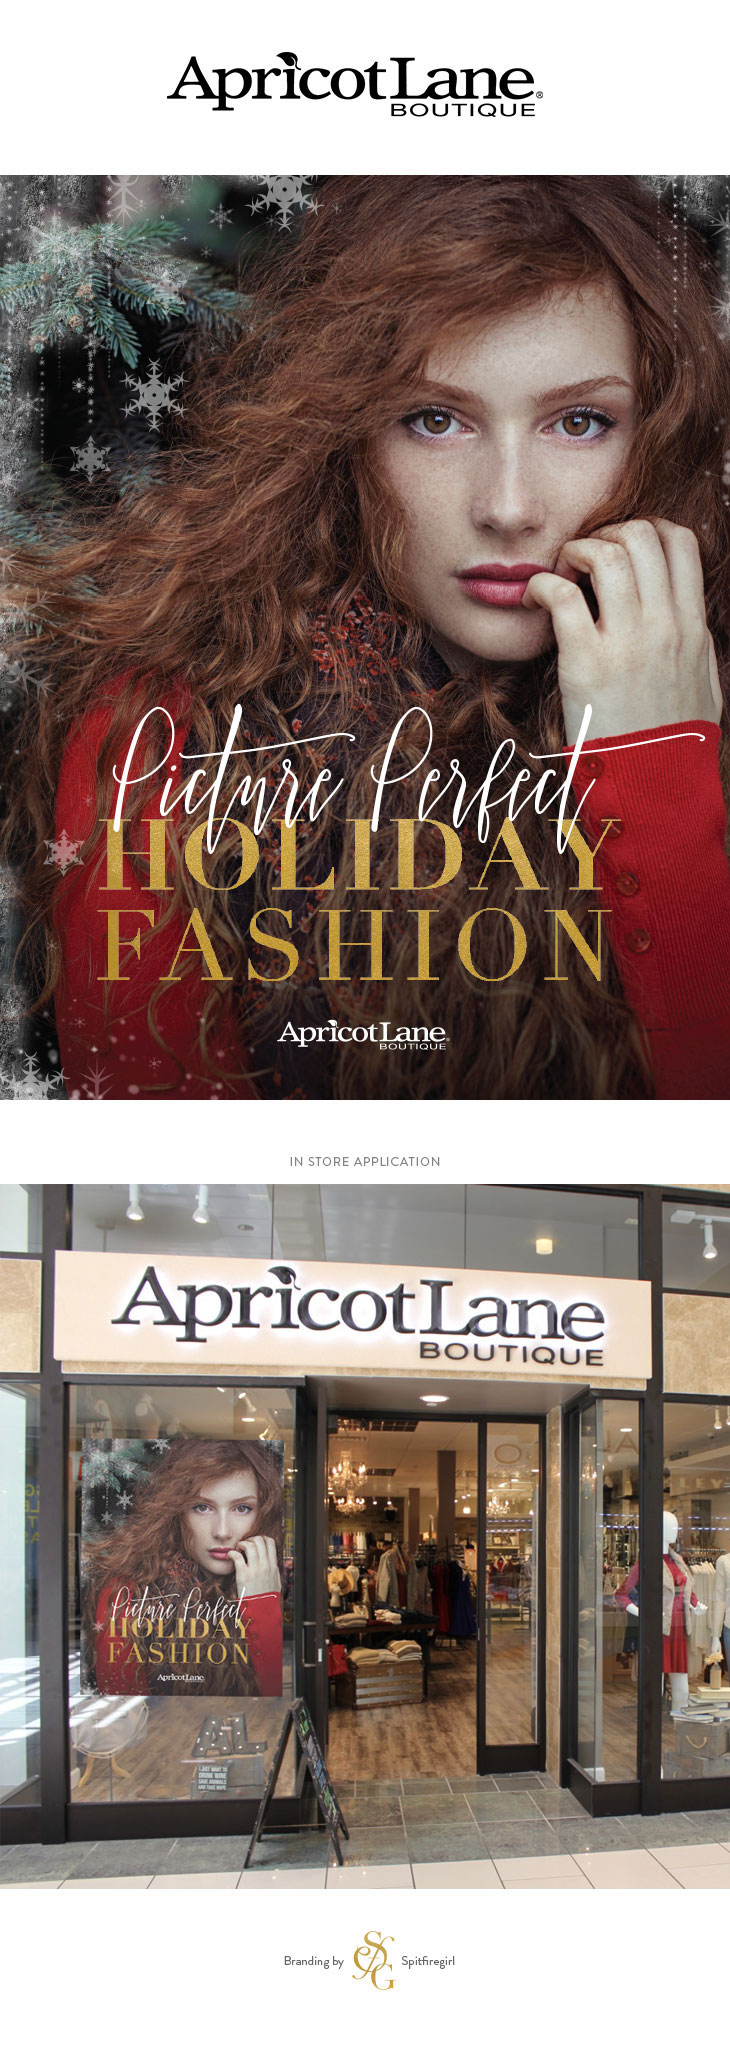 Apricot Lane Holiday Fashion Campaign | Spitfiregirl